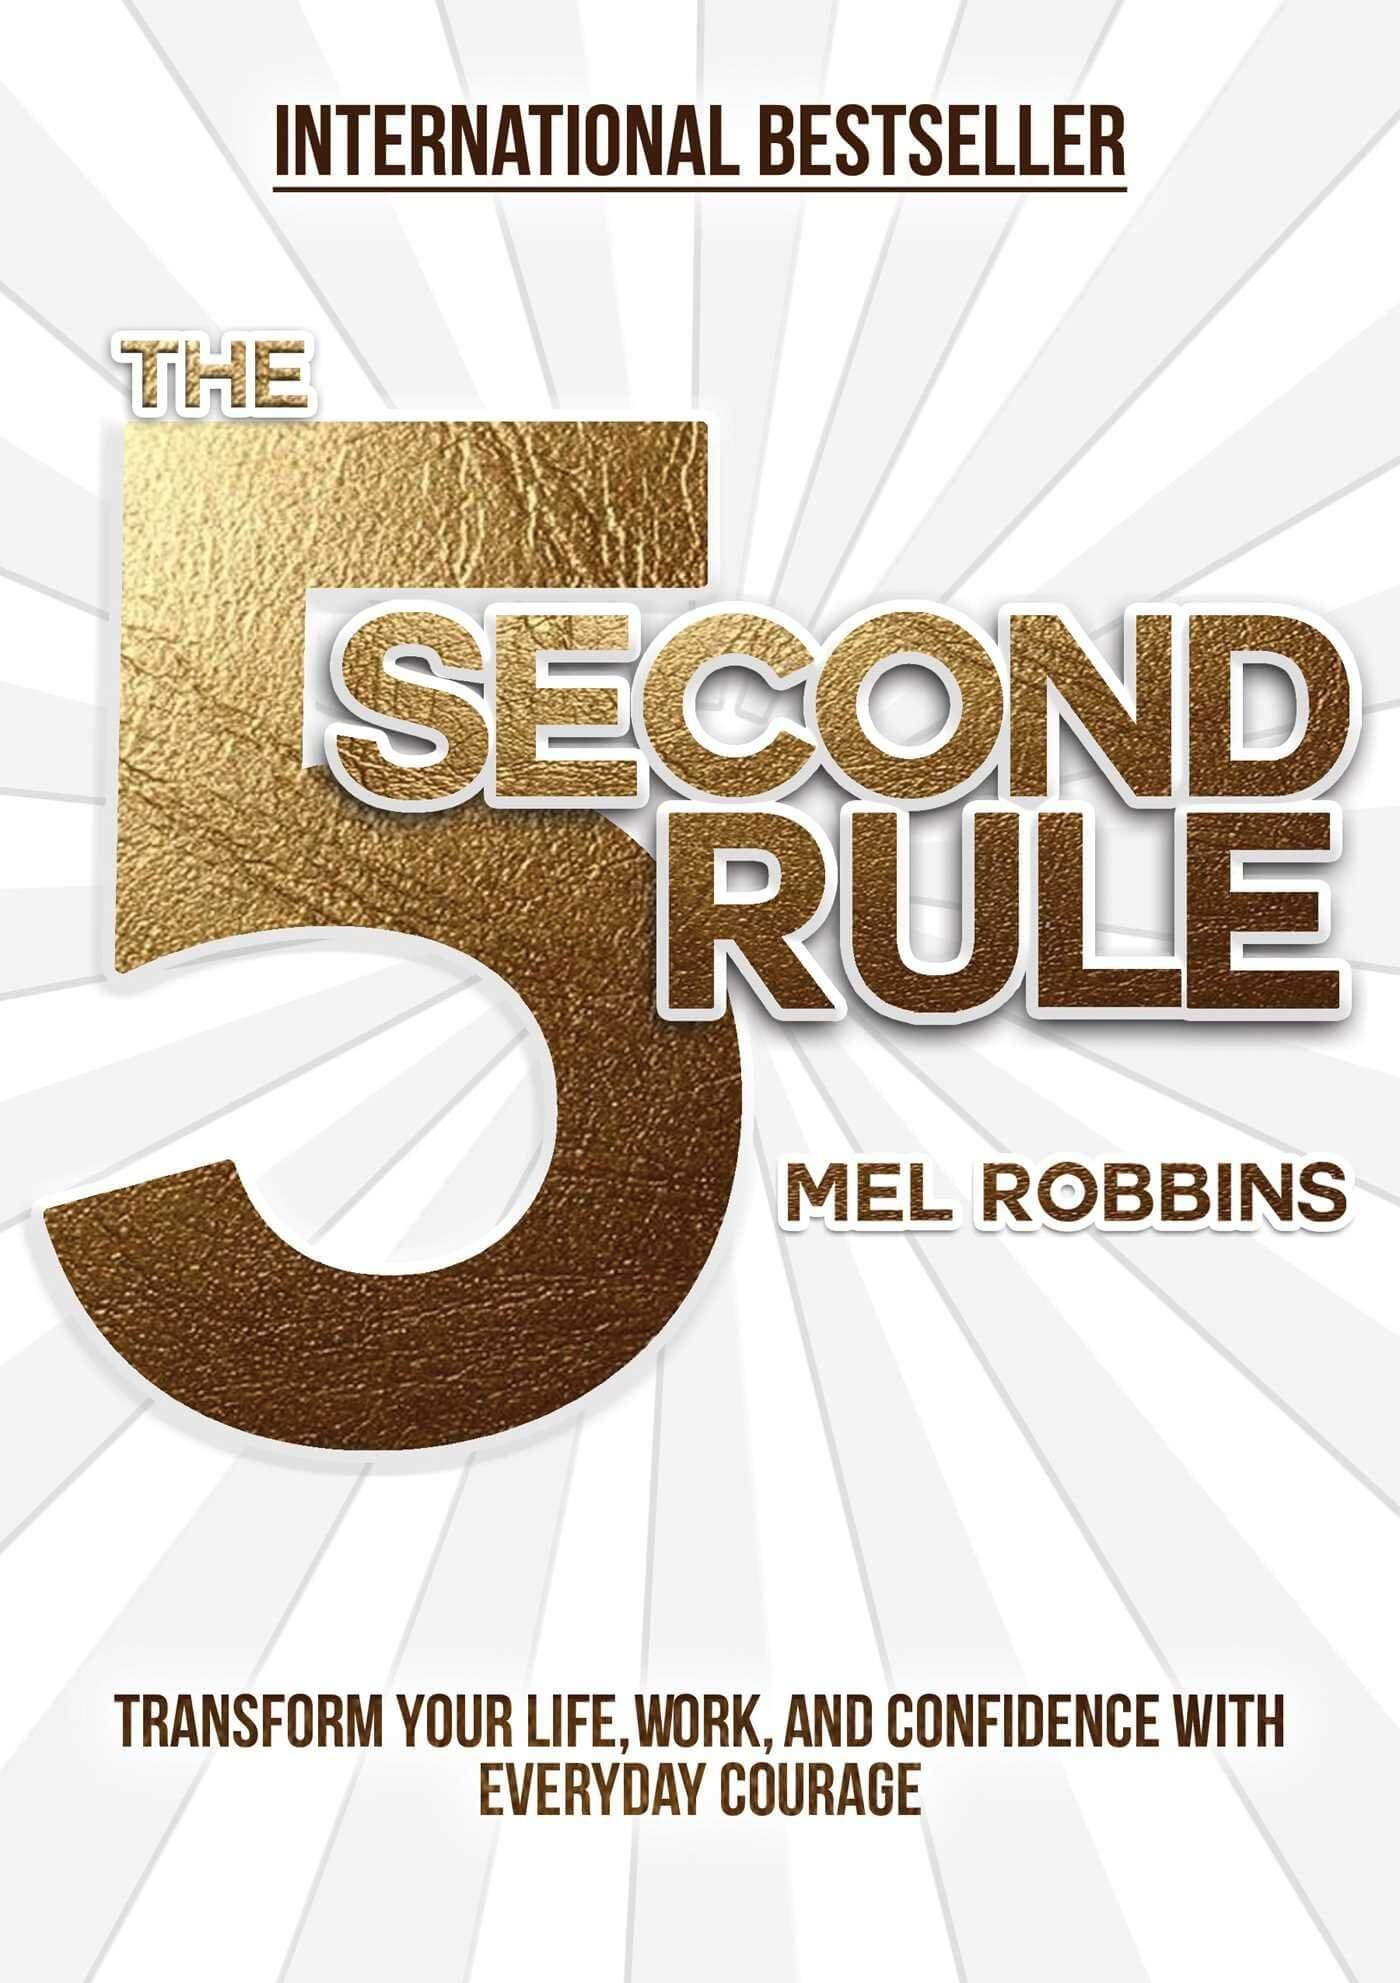 5 Second Rule (1)